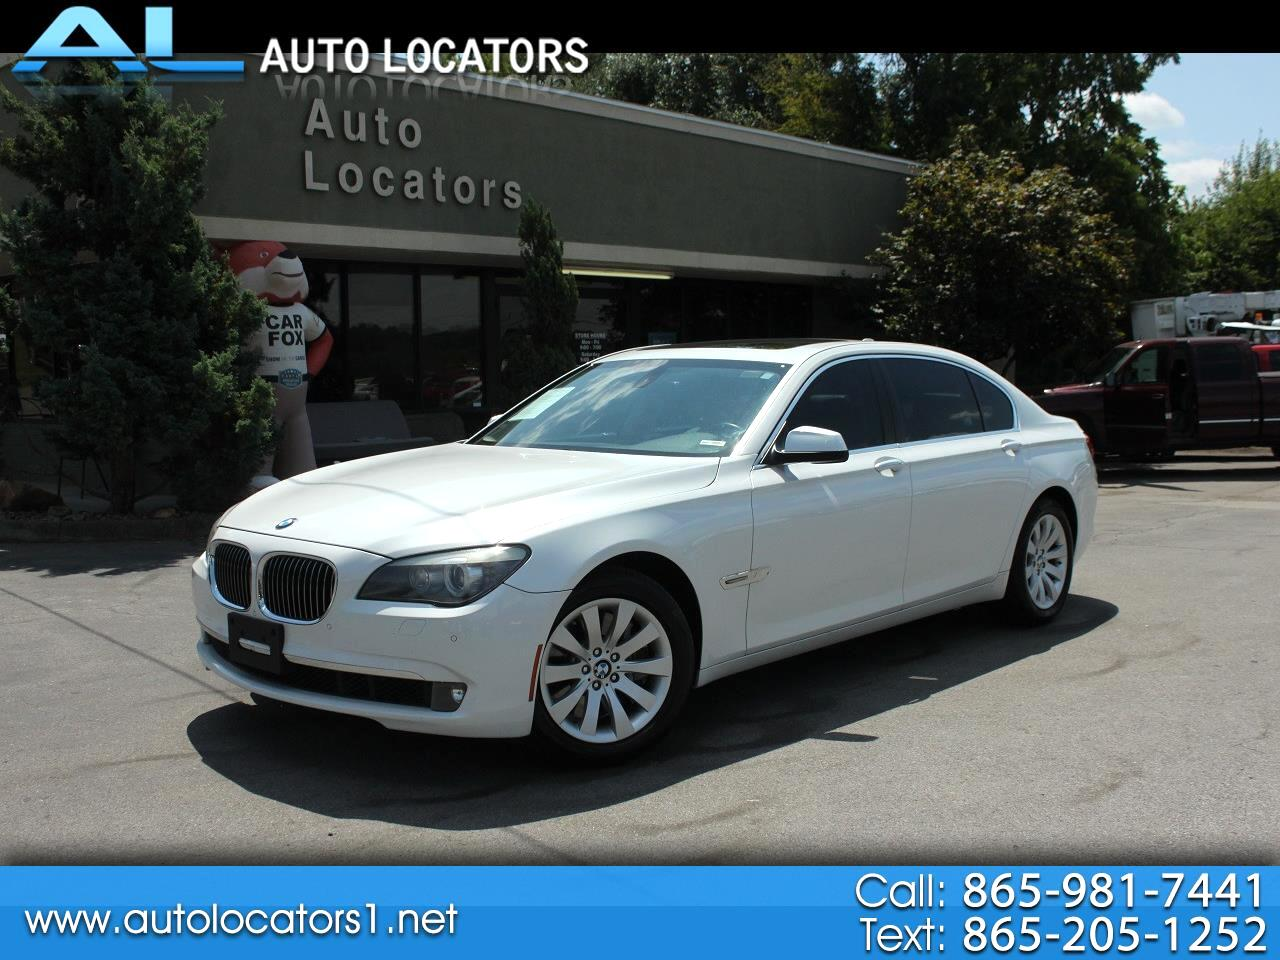 2011 BMW 7 Series 750Li 4dr Sdn